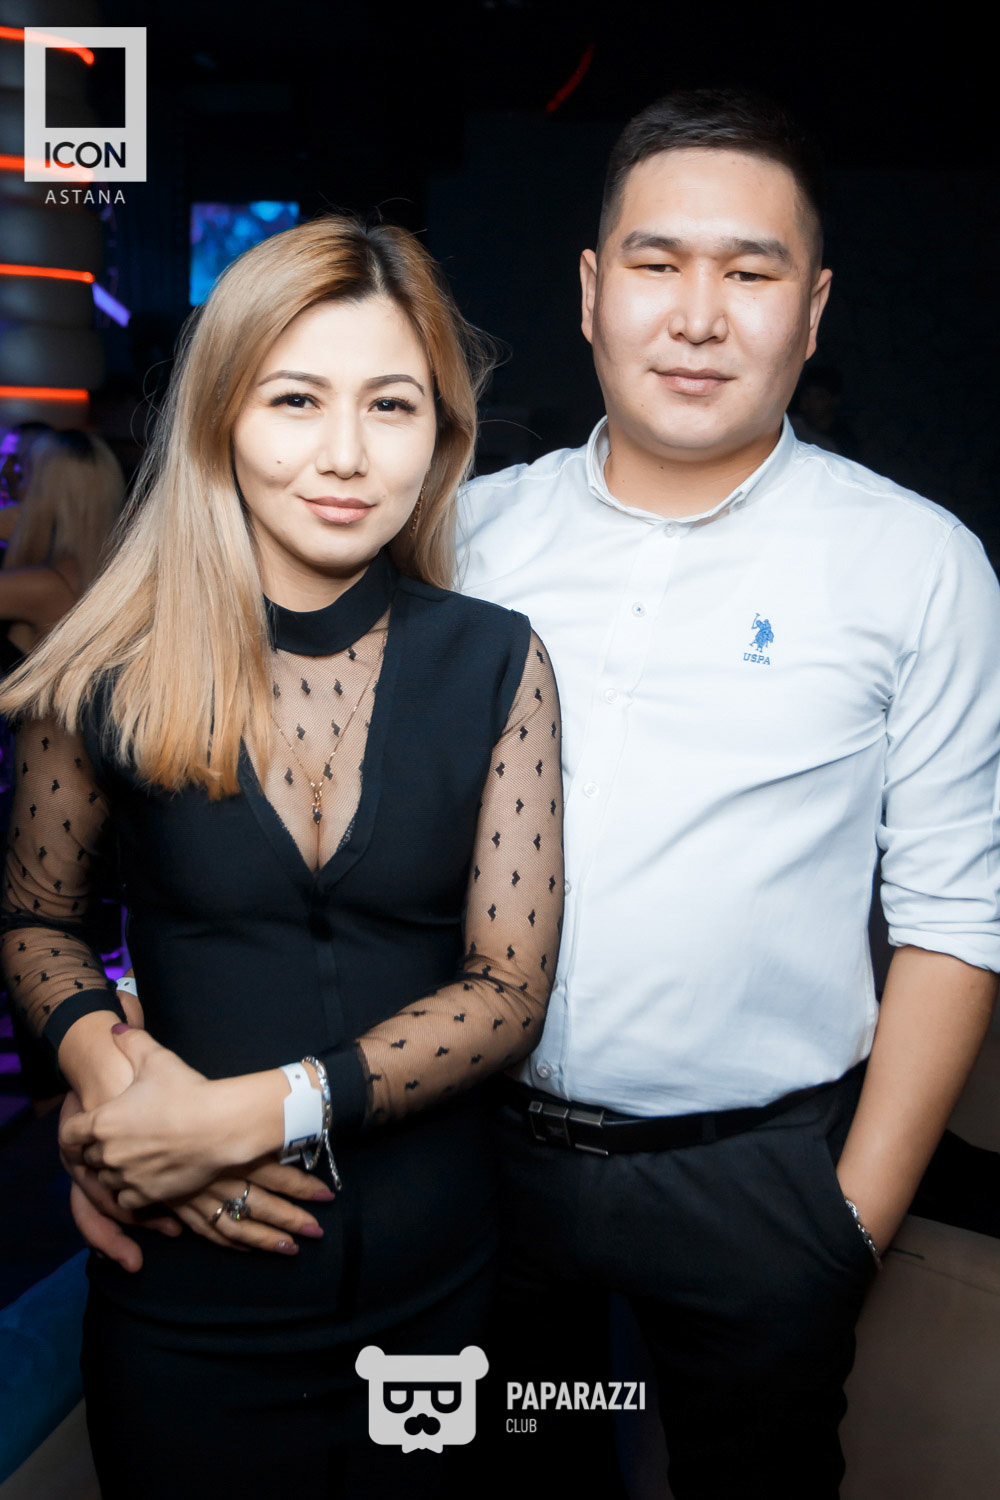 GAYAZOVS BROTHERS • ICON CLUB ASTANA